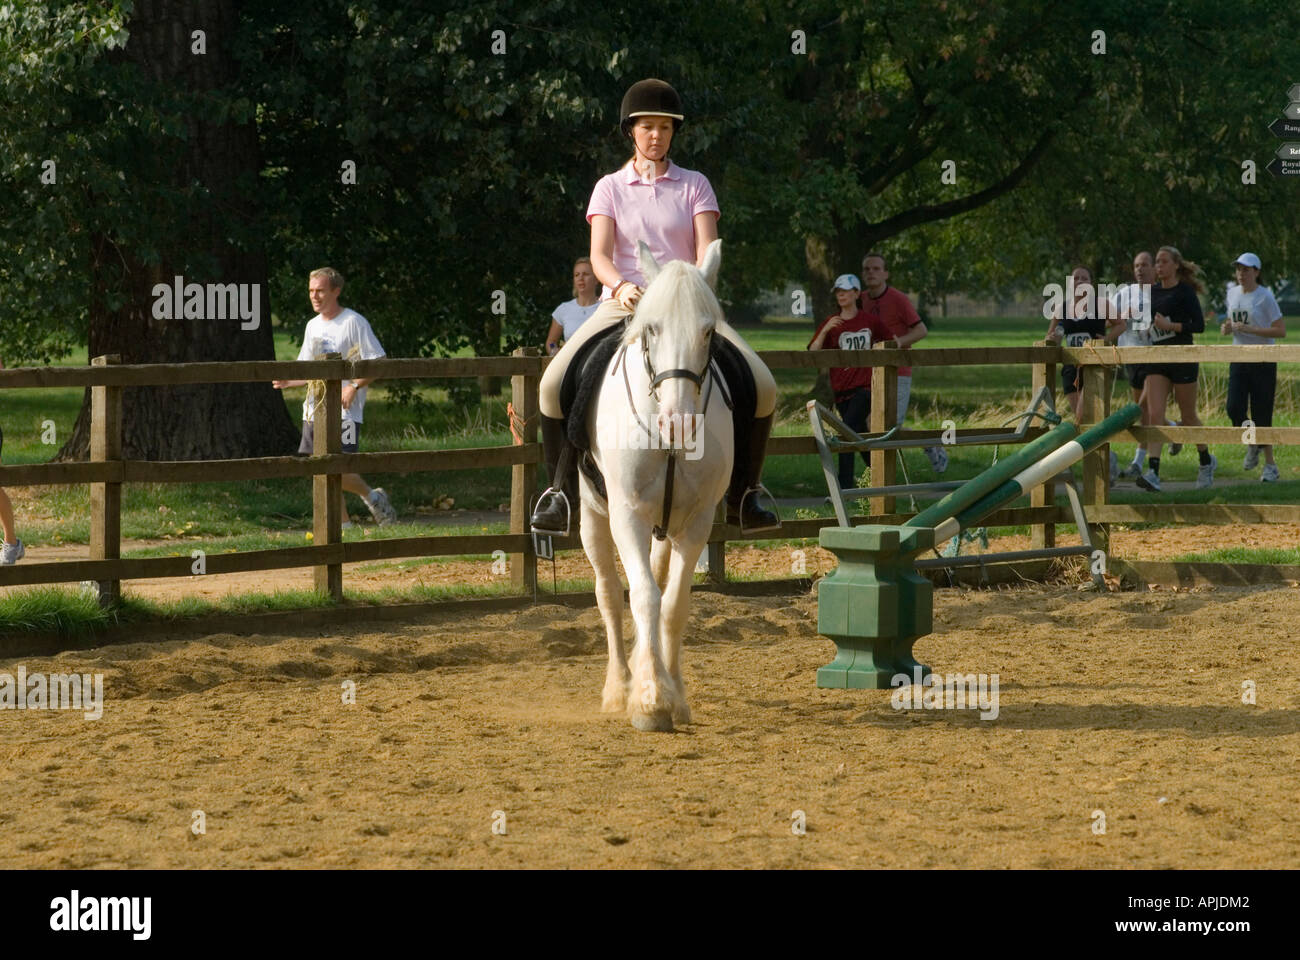 Horse riding in 'Hyde Park' Schooling, London,  England - Stock Image